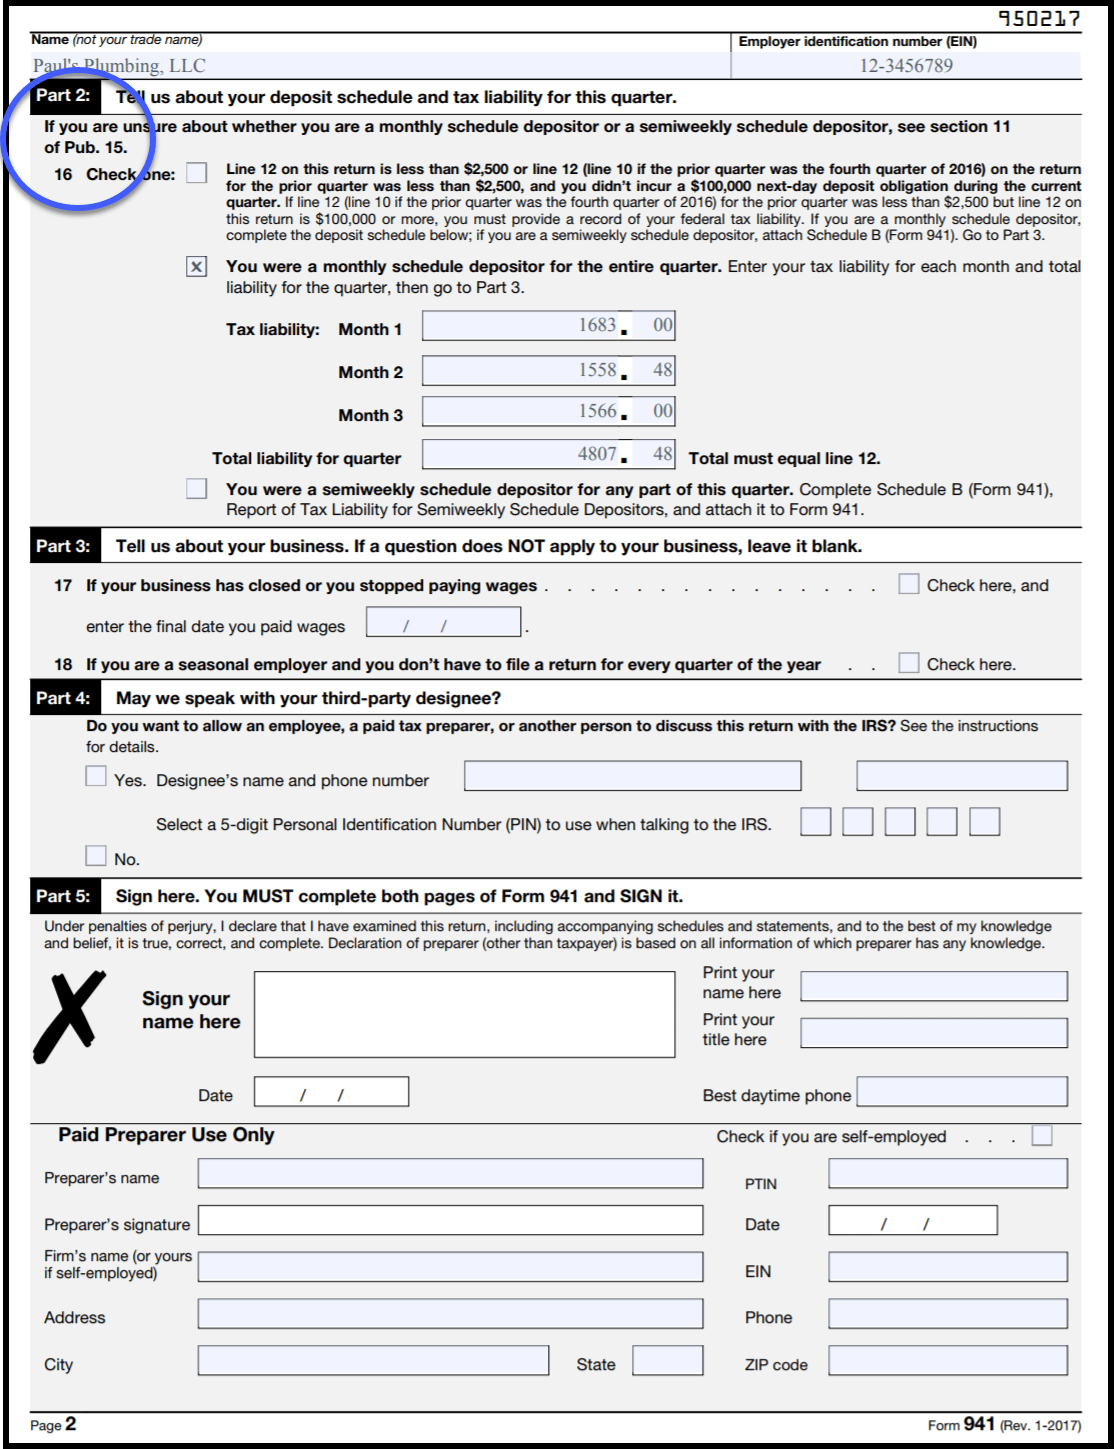 Ontario 2018 tax return how to enter commision